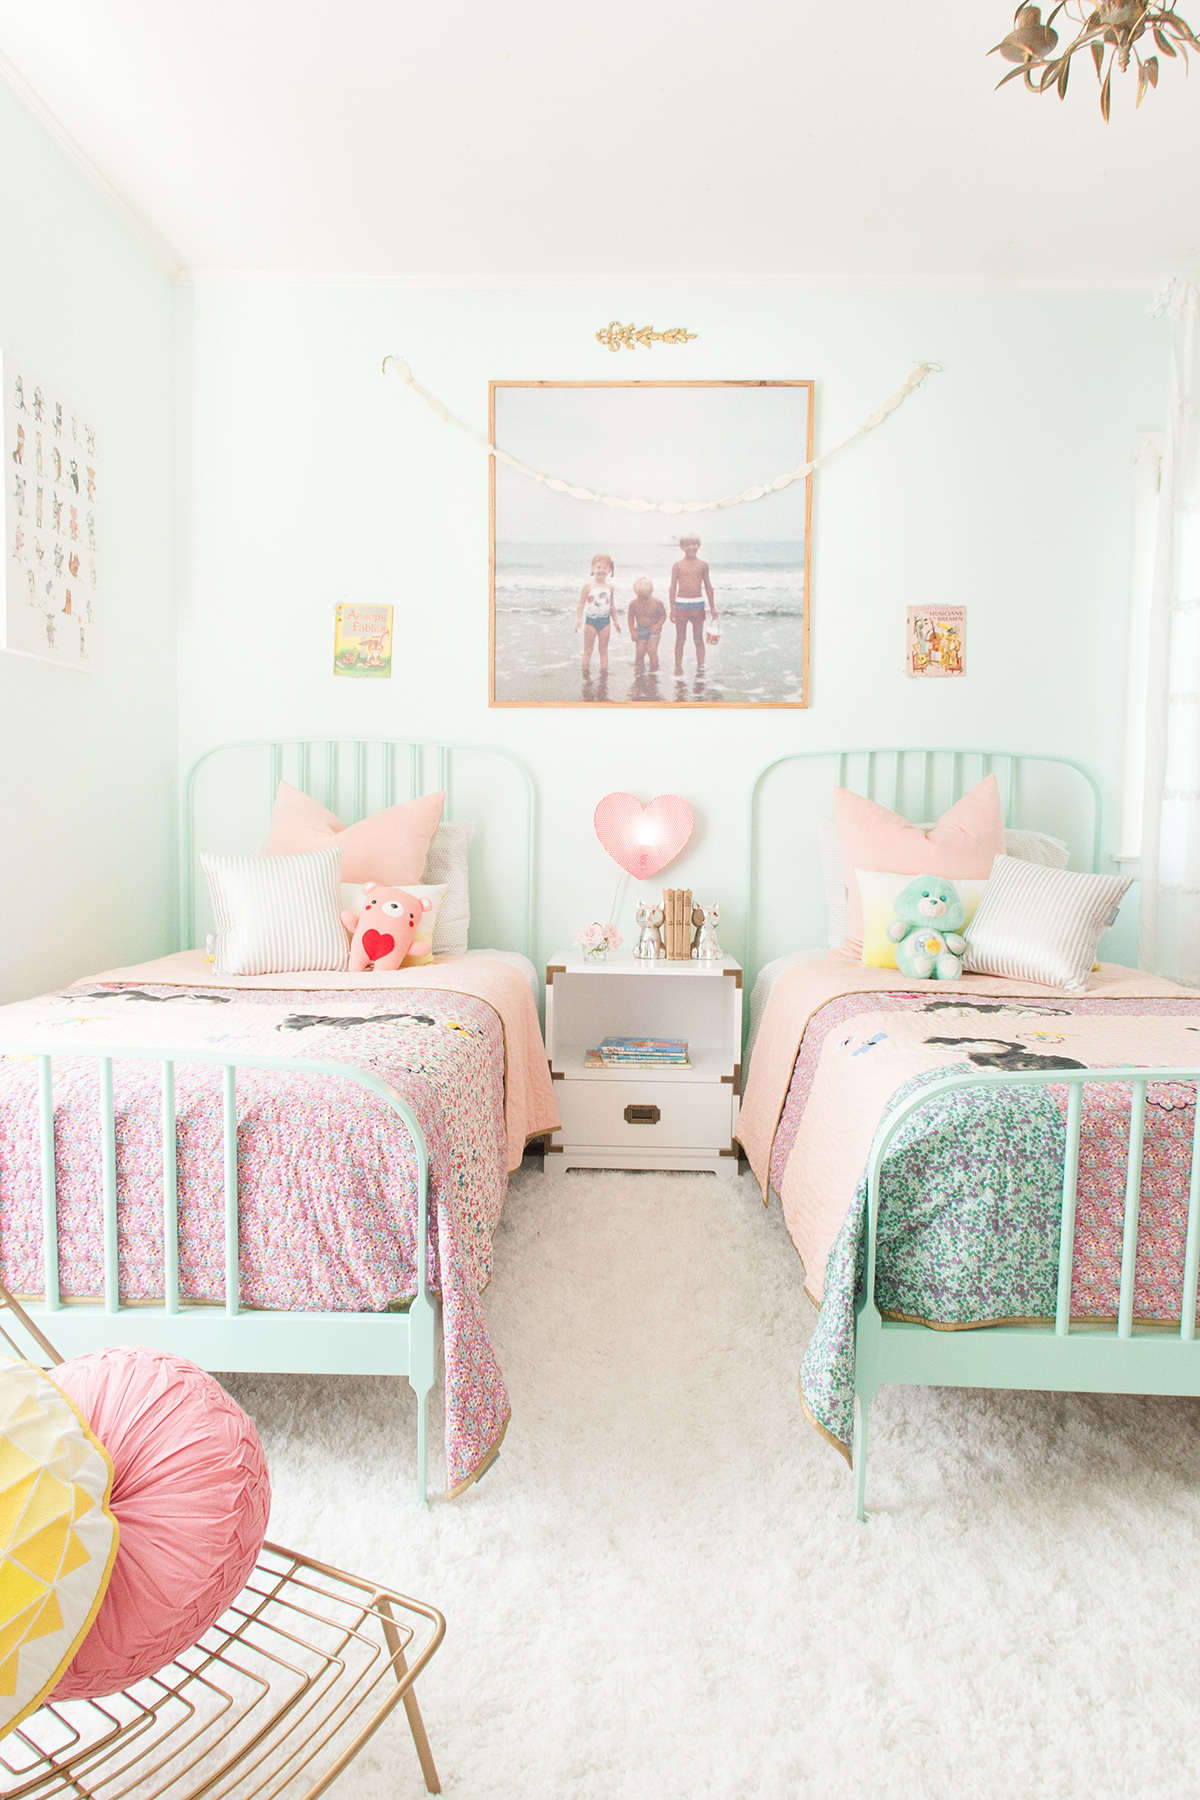 d Girls Room Ideas Inspiration for shared bedrooms for kids